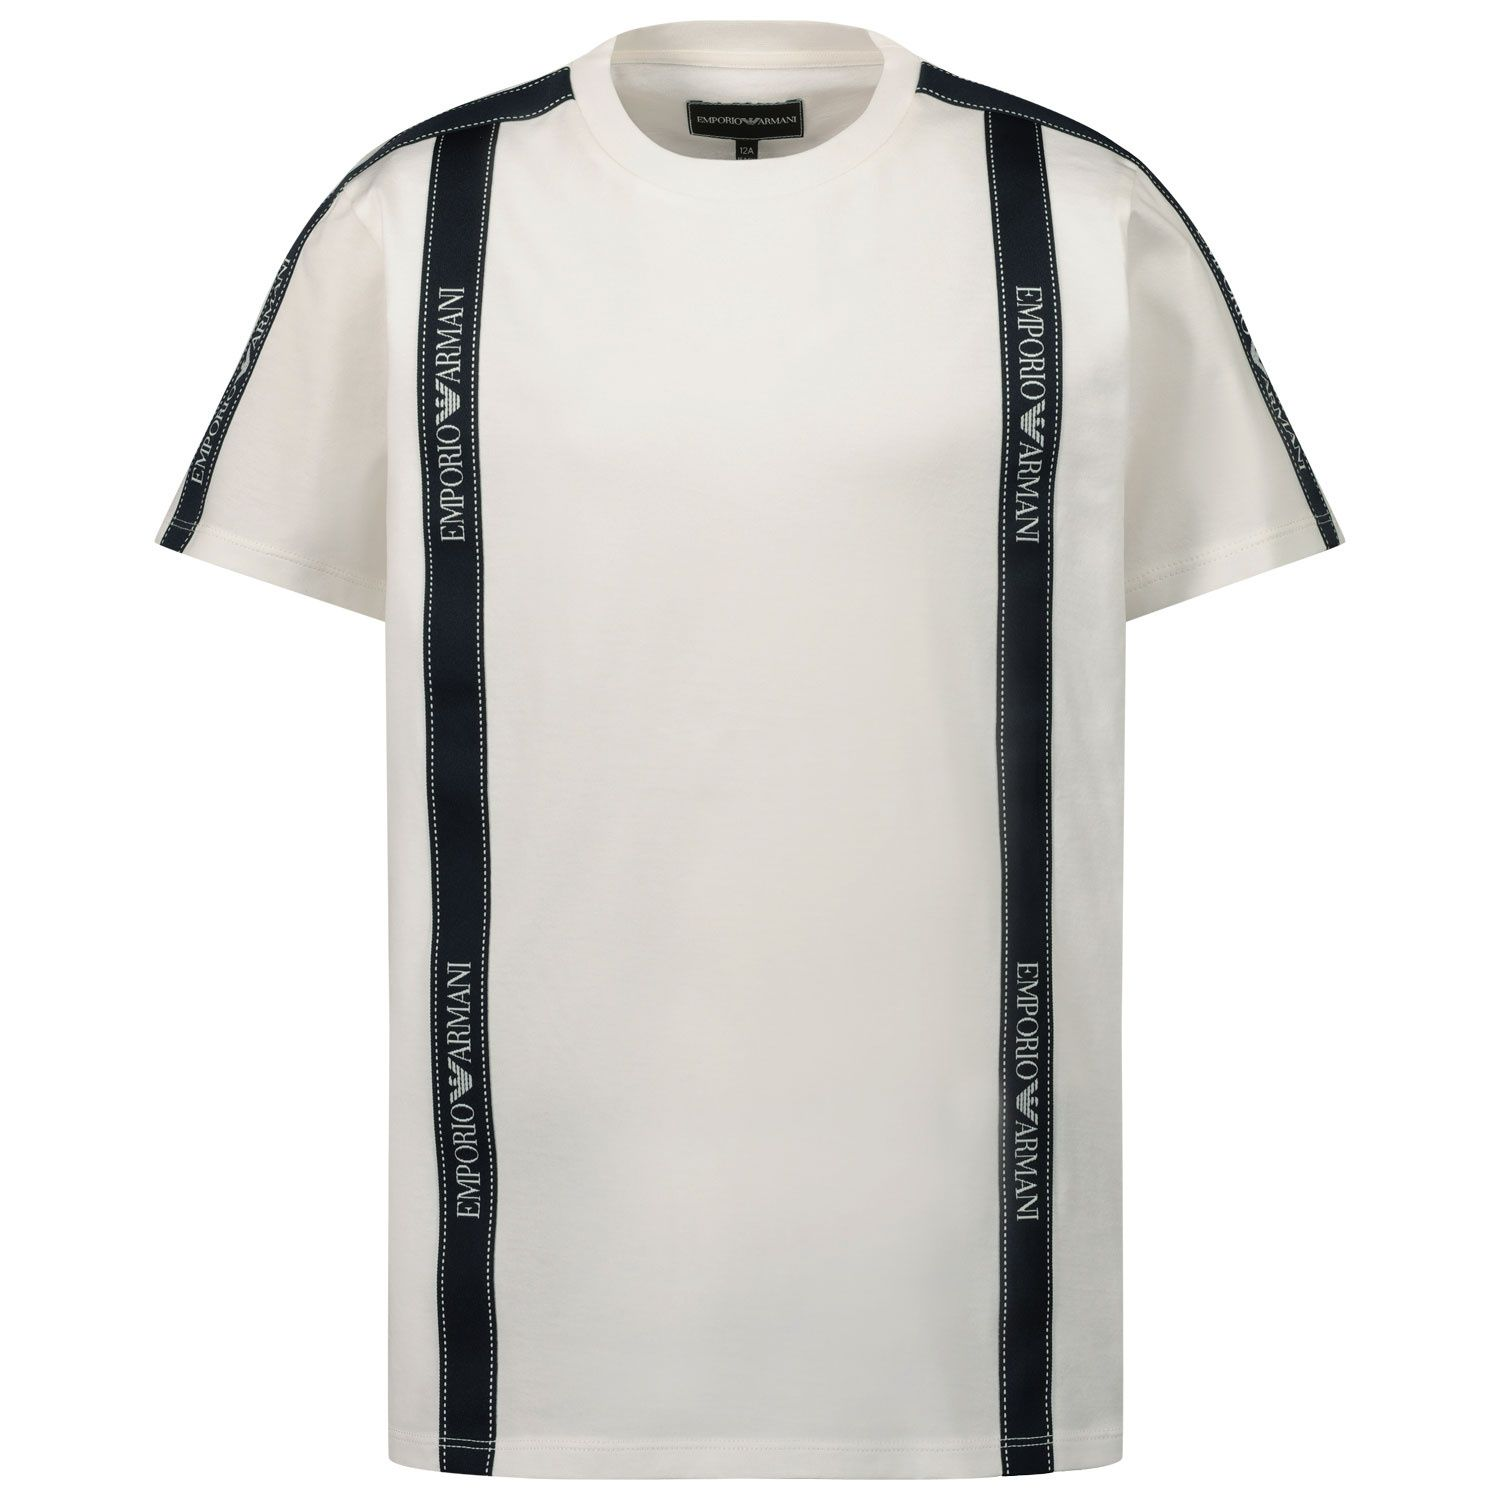 Picture of Armani 6H4TG4 kids t-shirt off white